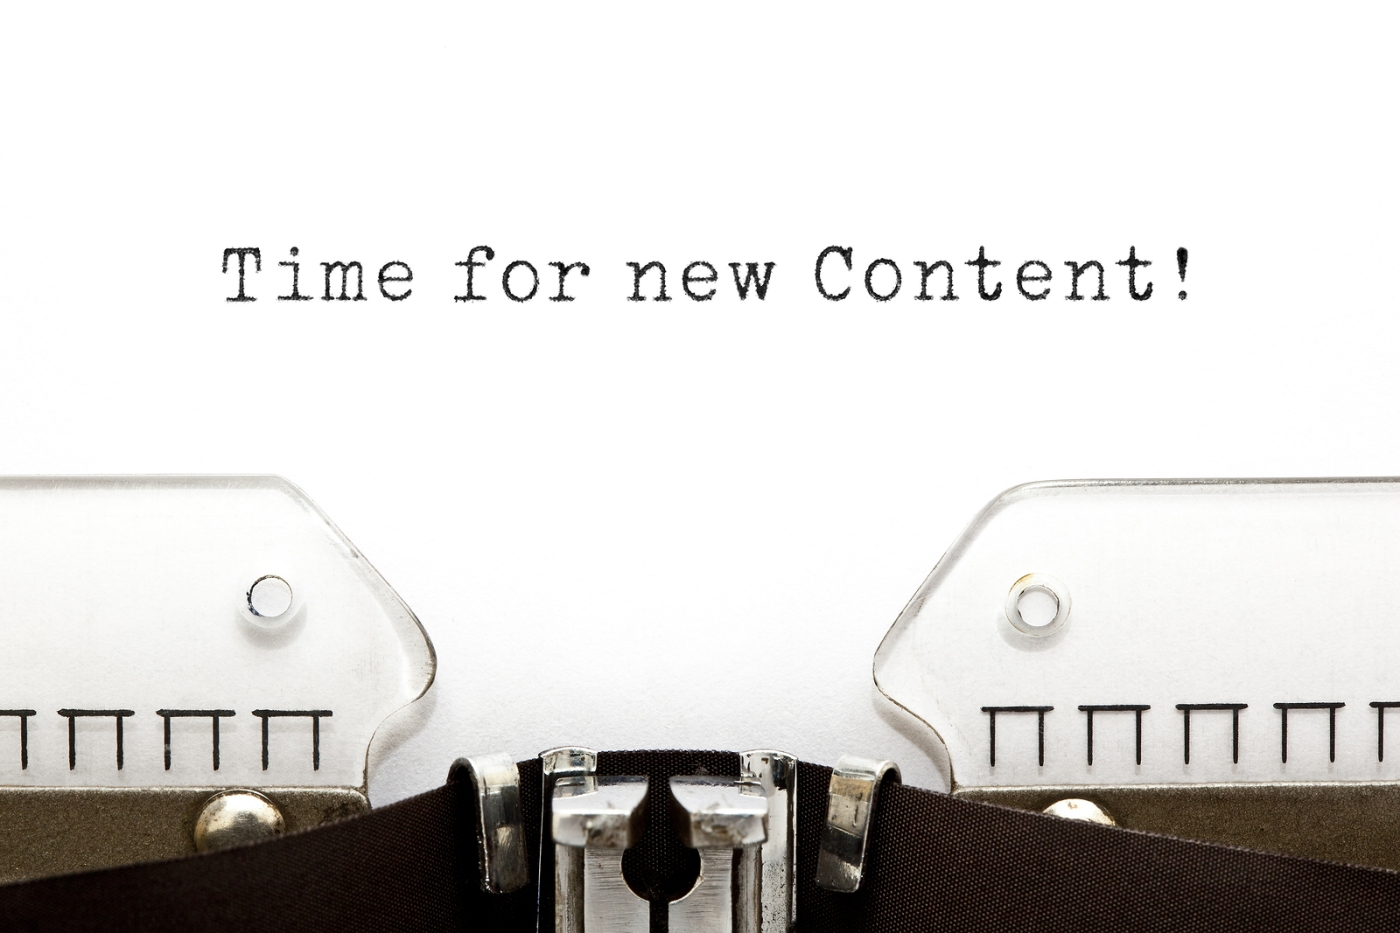 time for New content